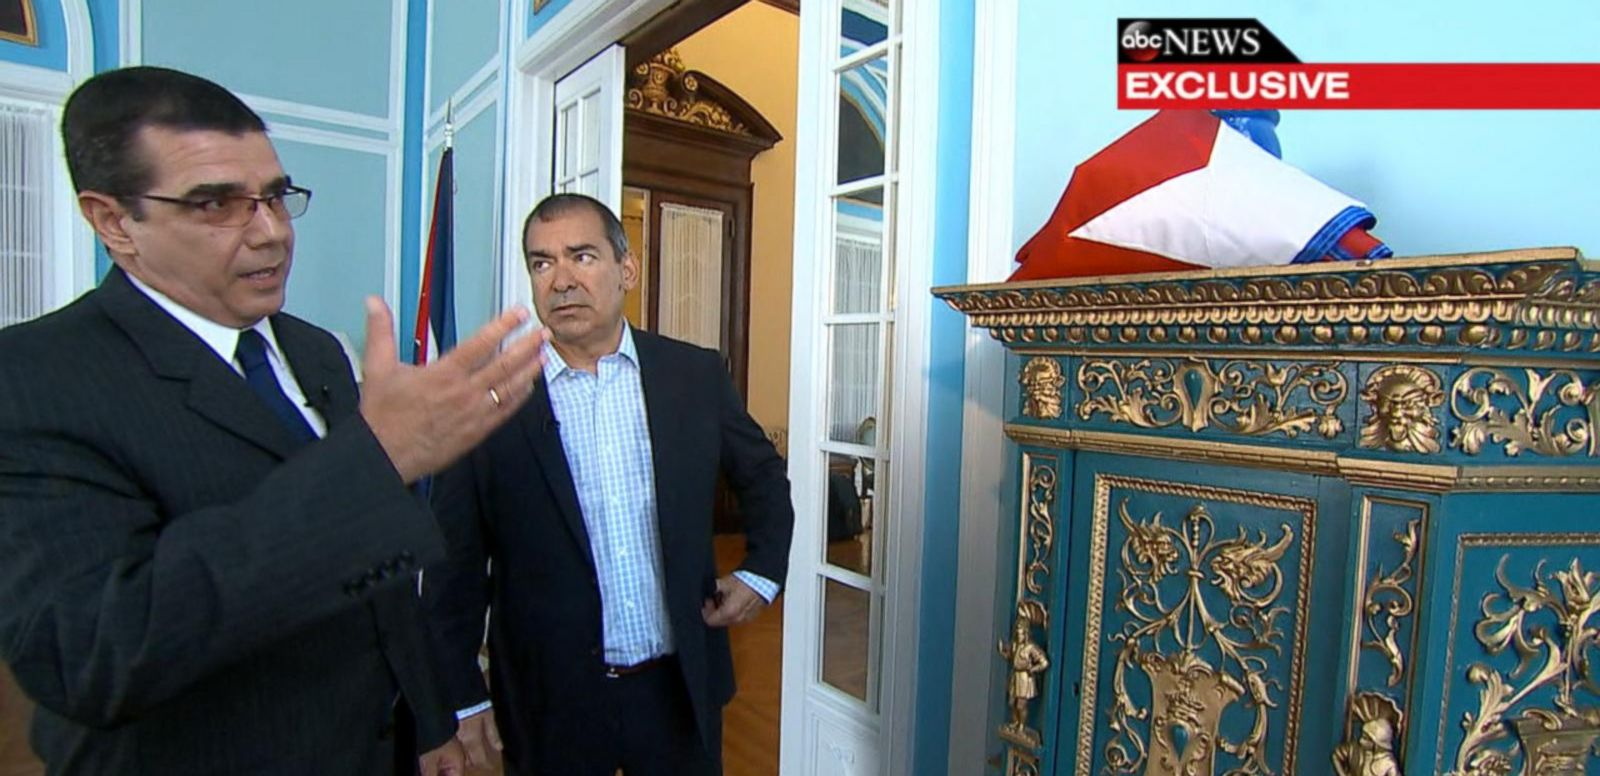 VIDEO: US to Reopen Embassy in Cuba